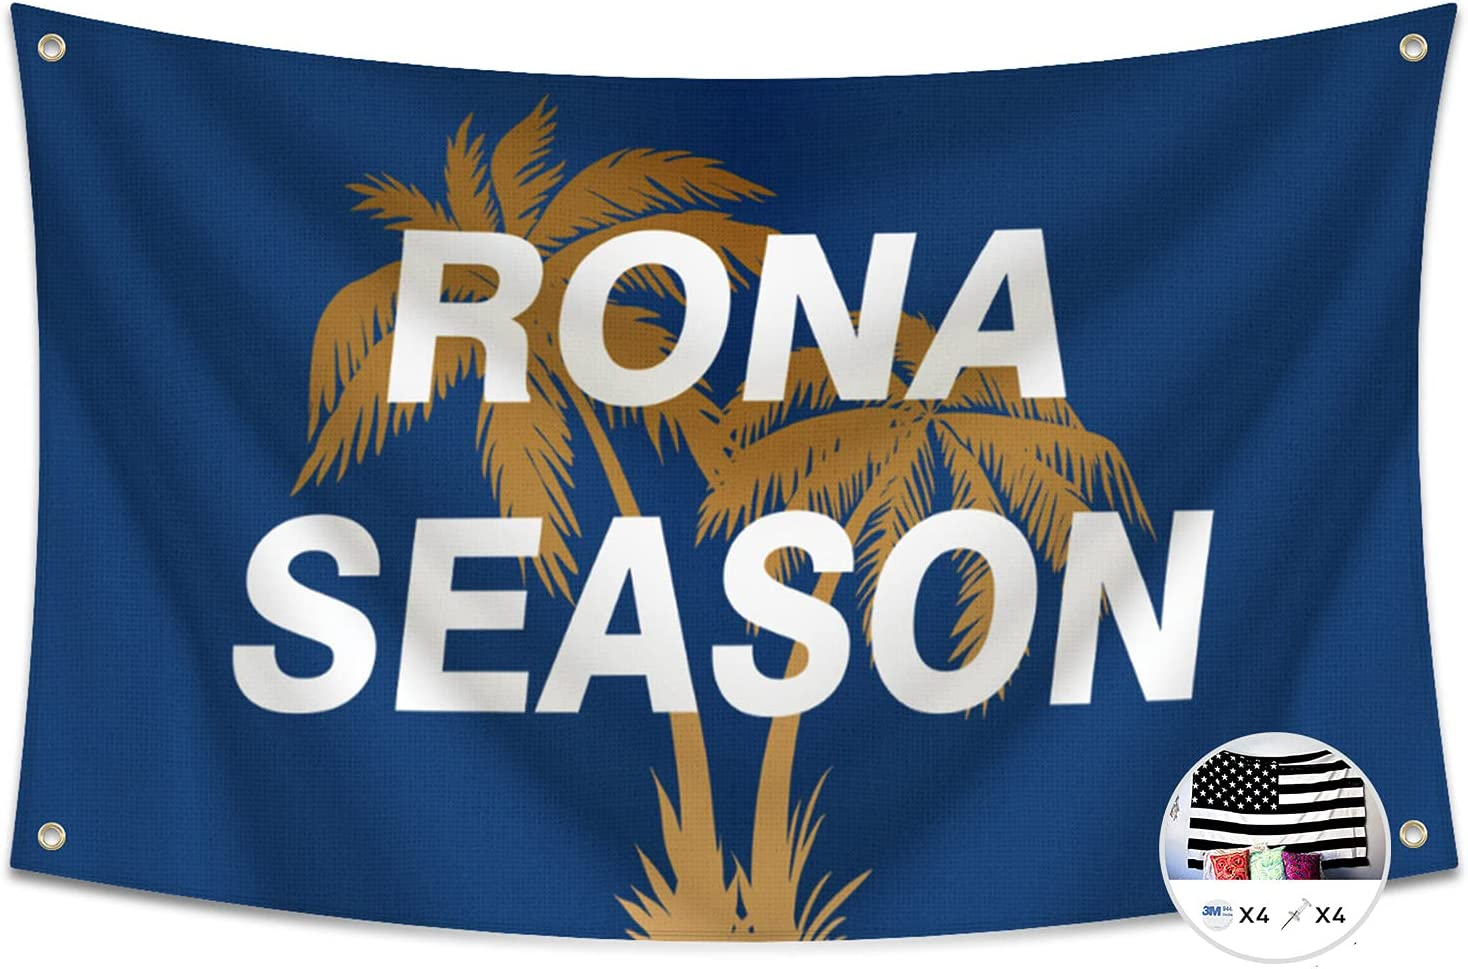 Probsin Rona Season Flag,3x5 Feet Banner,Funny Poster UV Resistance Fading & Durable Man Cave Wall Flag with Brass Grommets for College Dorm Room Decor,Outdoor,Parties,Gift,Tailgates